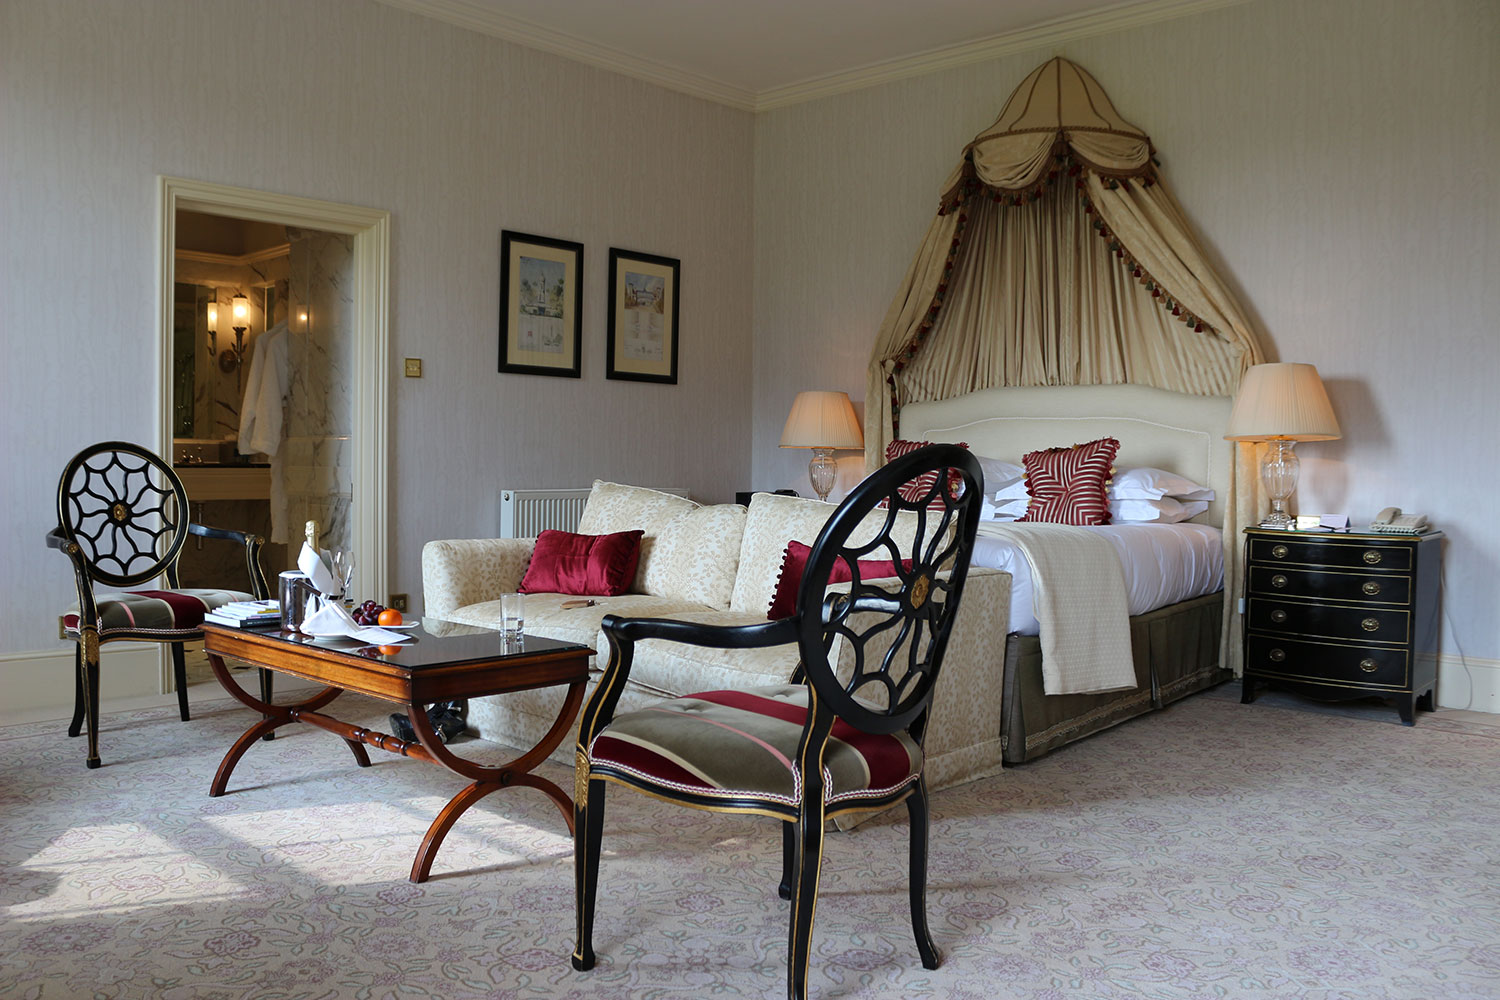 Lucknam Park Hotel Review